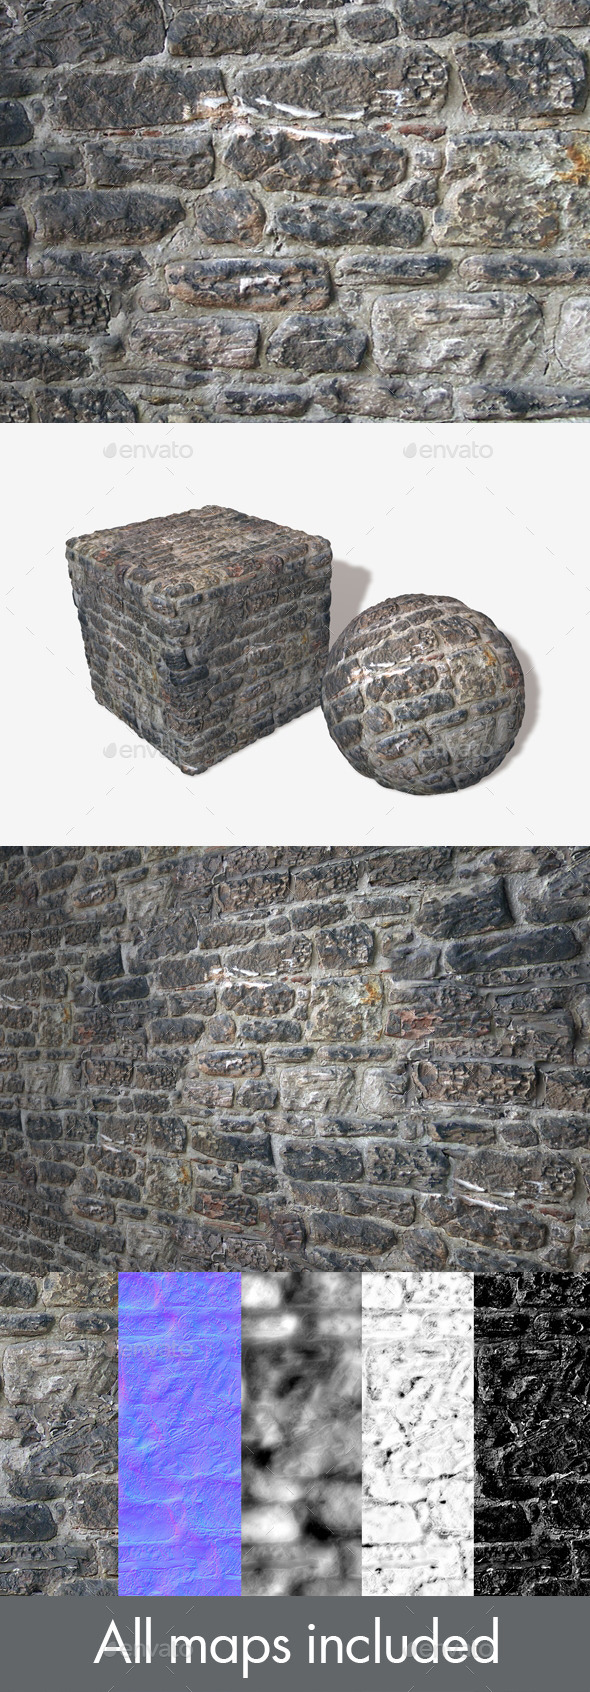 Re-plastered Rock Wall Seamless Texture - 3DOcean Item for Sale